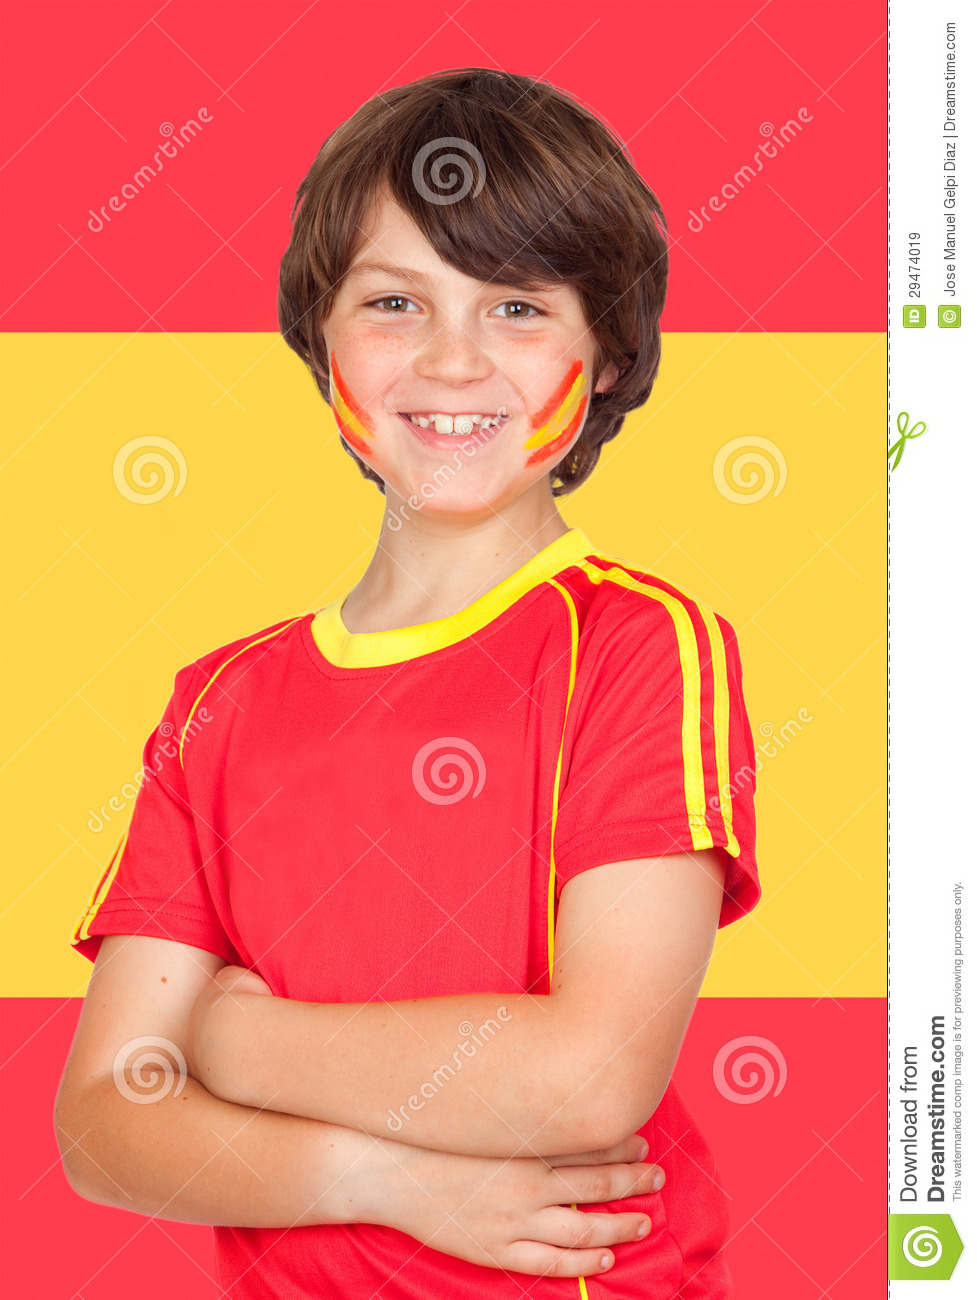 spanish boy with t shirt team and spain flag royalty free stock images   image 29474019